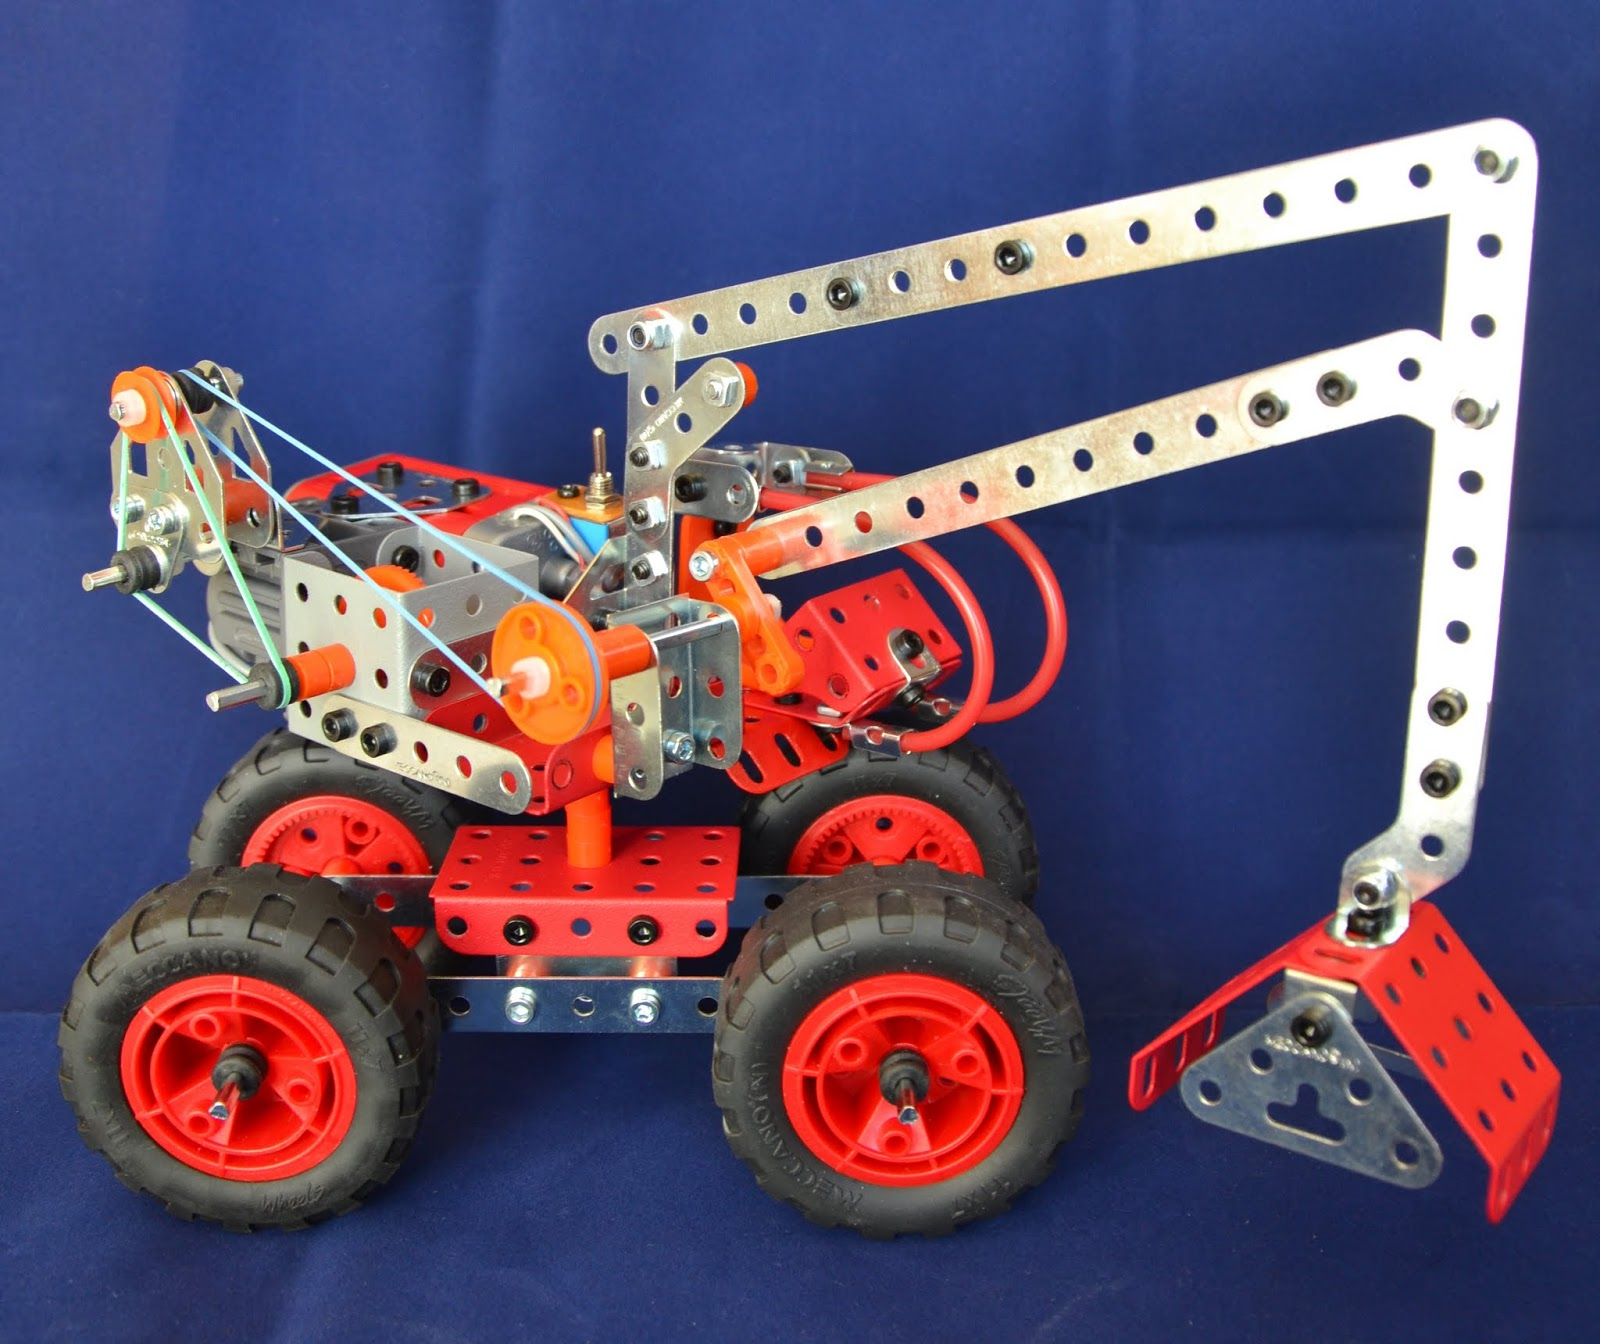 meccano multi models instructions